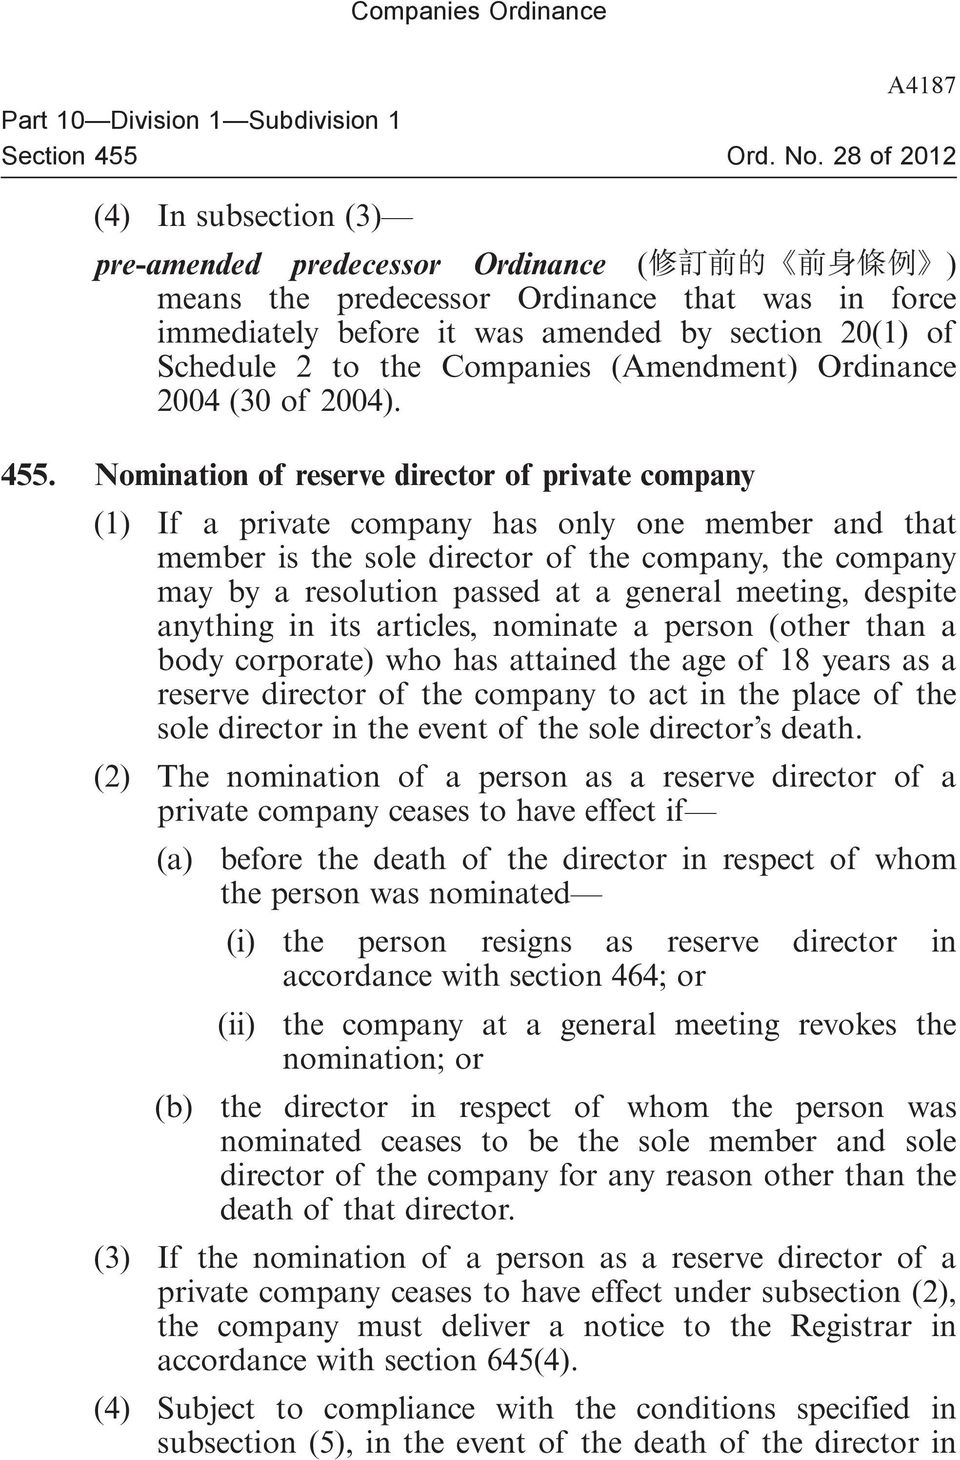 Nomination of reserve director of private company (1) If a private company has only one member and that member is the sole director of the company, the company may by a resolution passed at a general